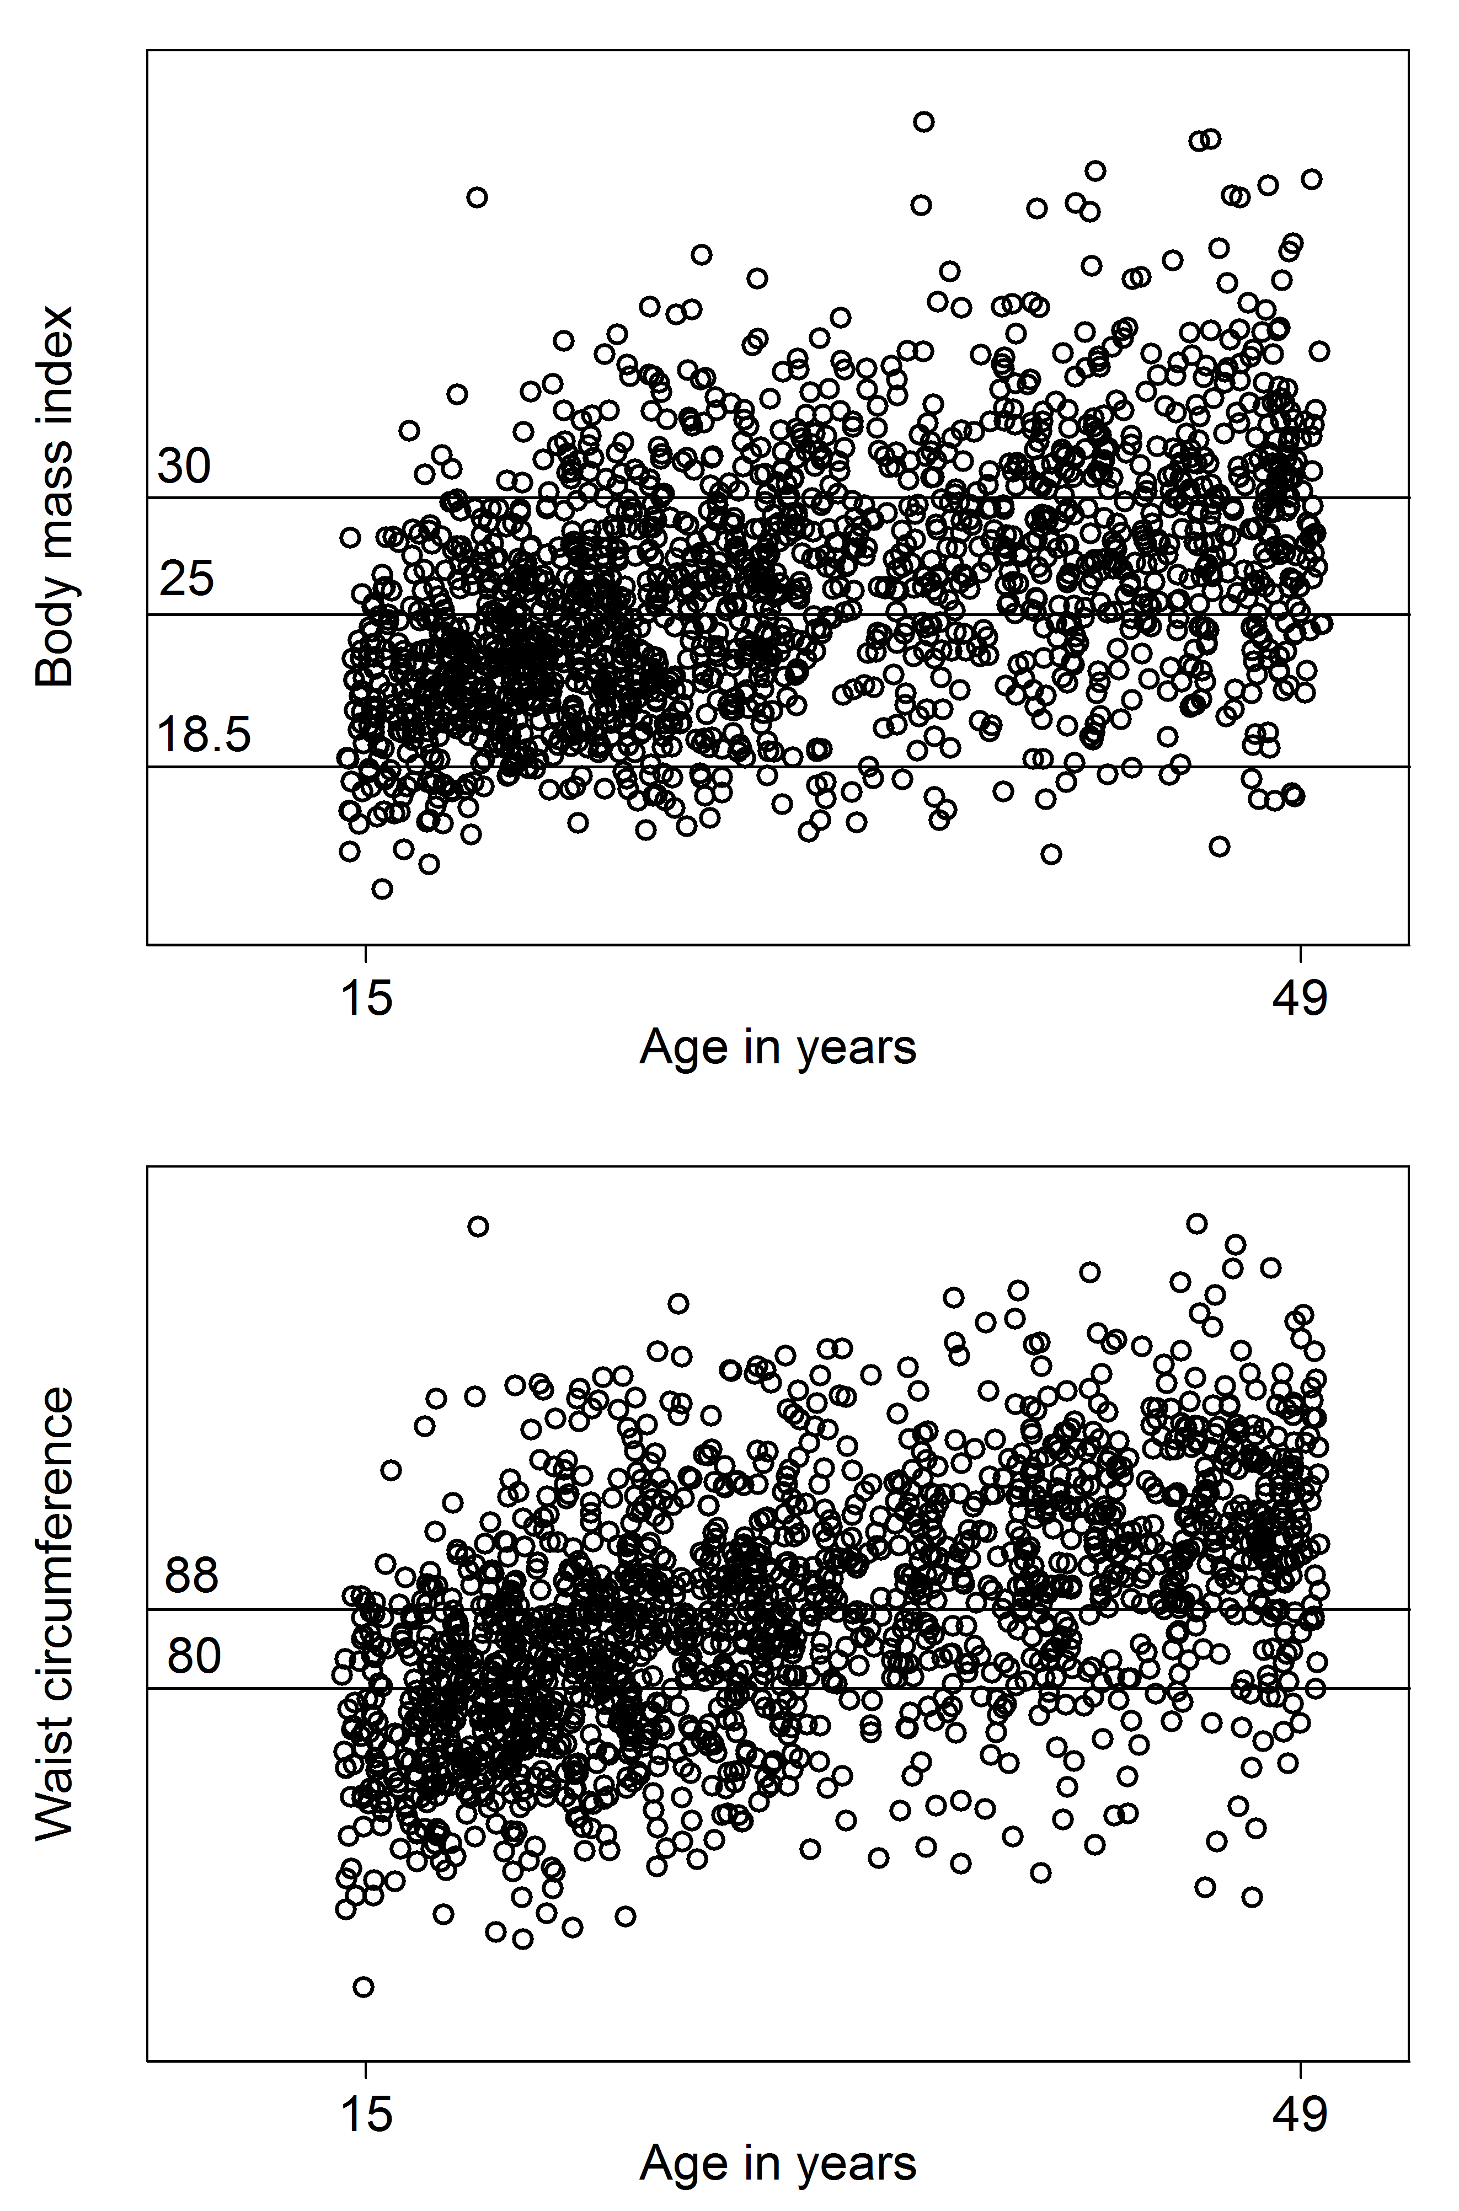 Overweight, obesity, and central obesity among refugee women by age.